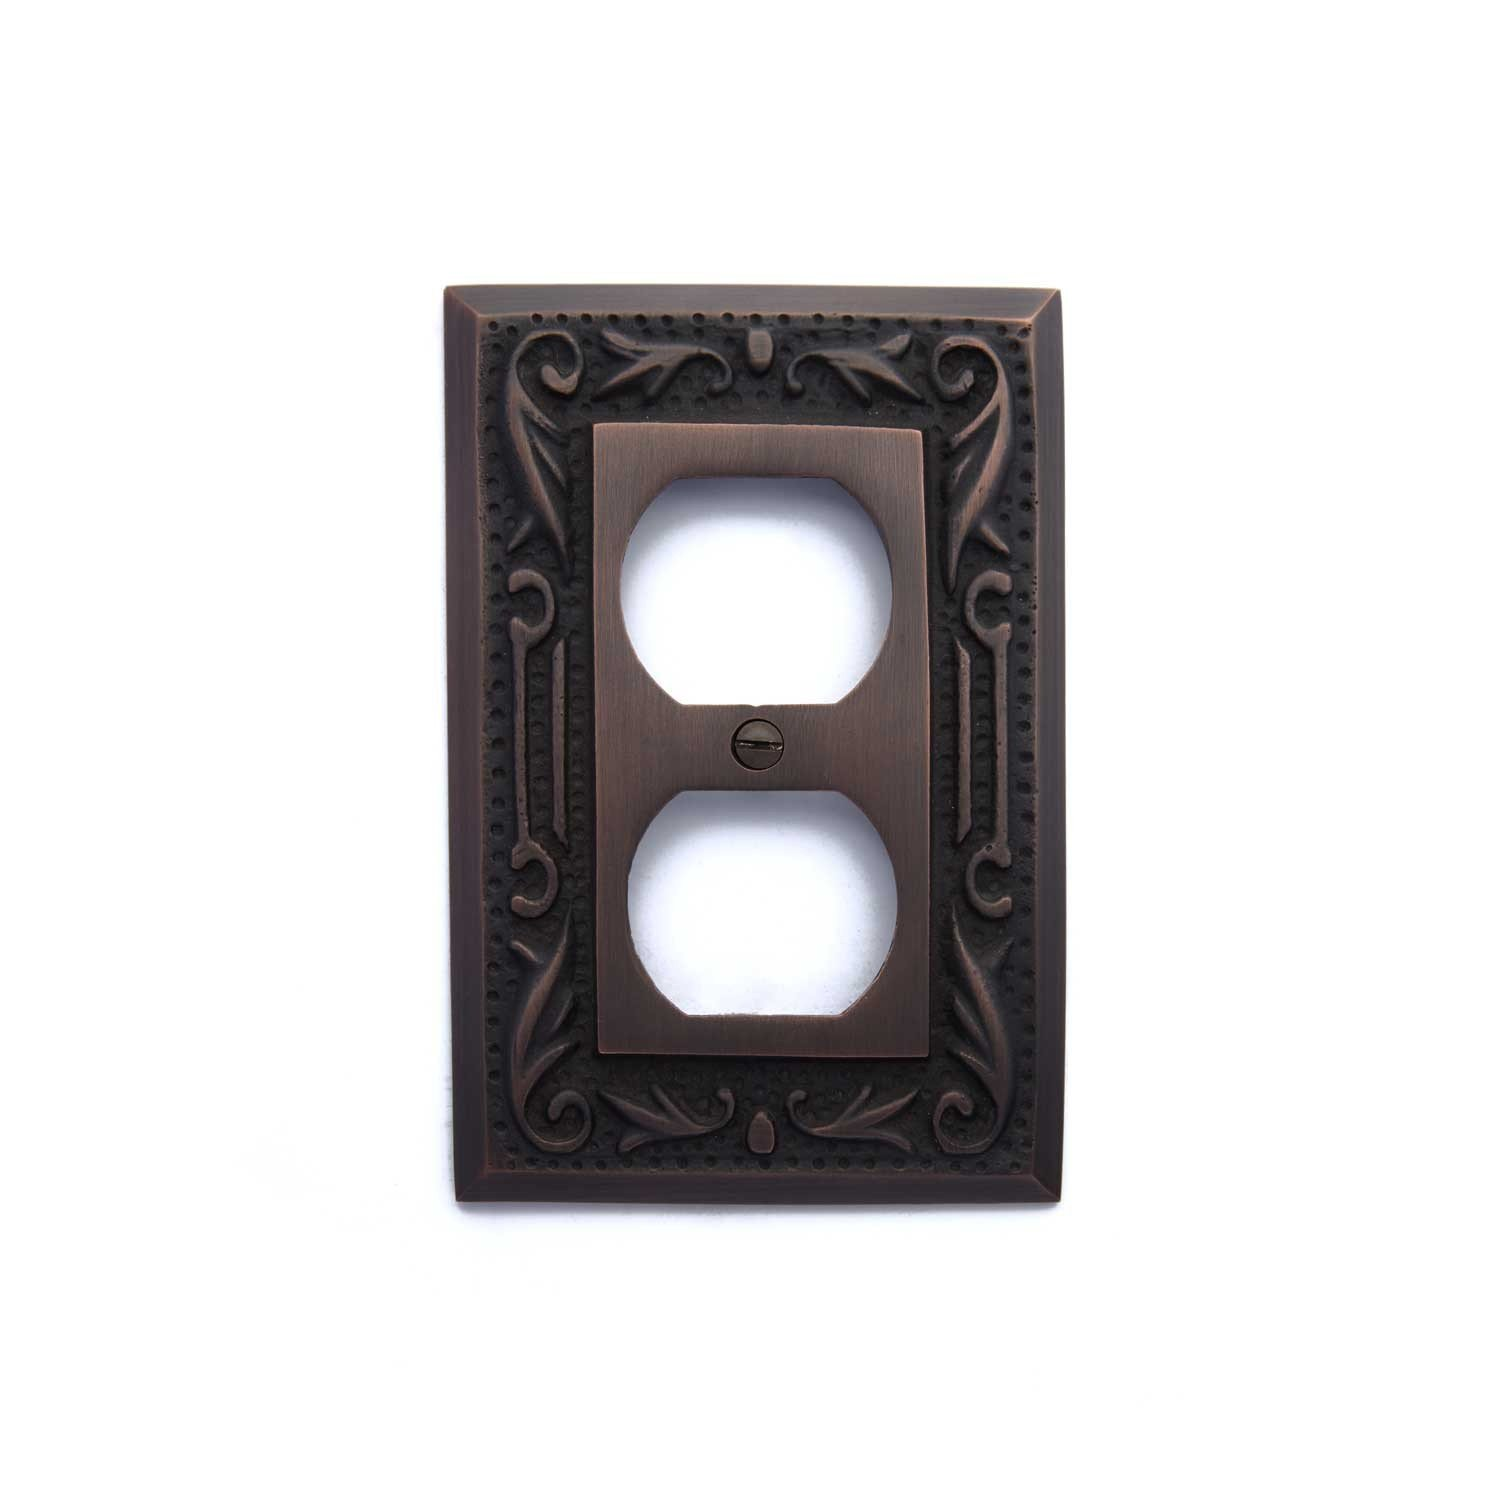 Naiture Floral Design Solid Brass Single Duplex Outlet Cover, Wall Plate, Switch Plate, Oil Rubbed Bronze Finish